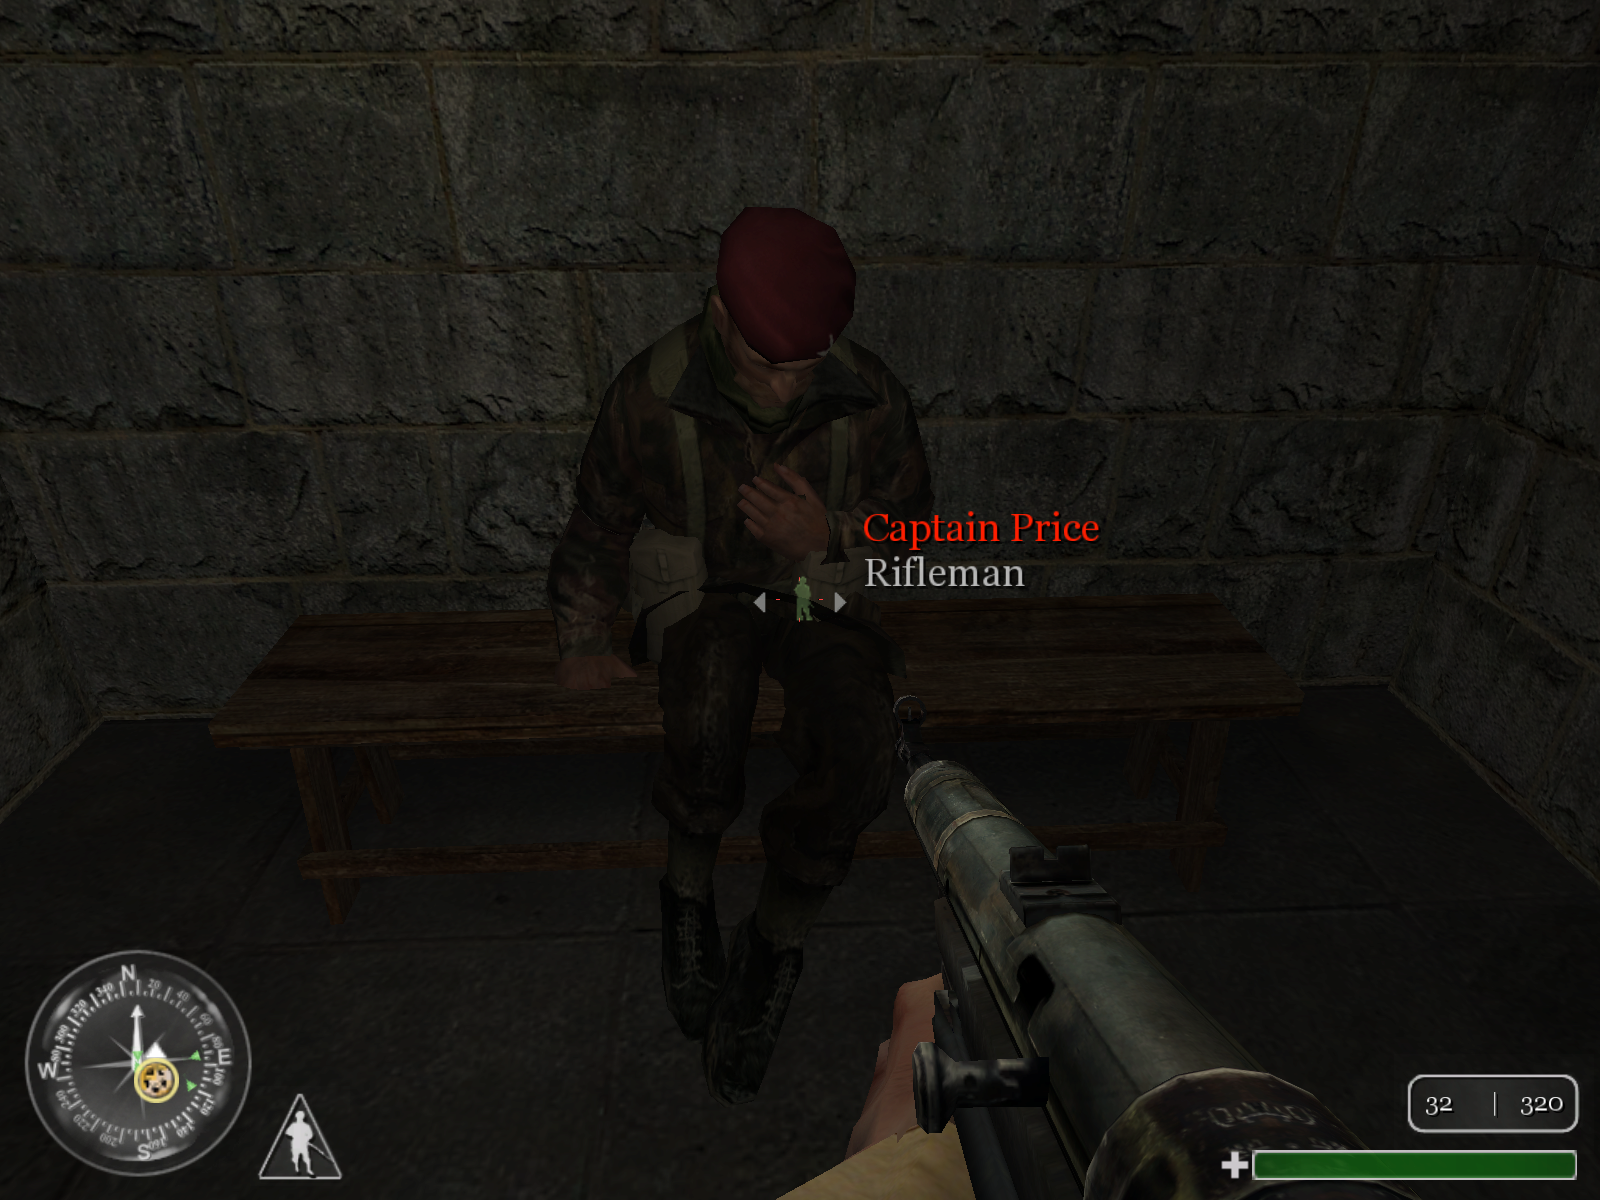 Captain Price screenshots images and pictures   Giant Bomb 1600x1200